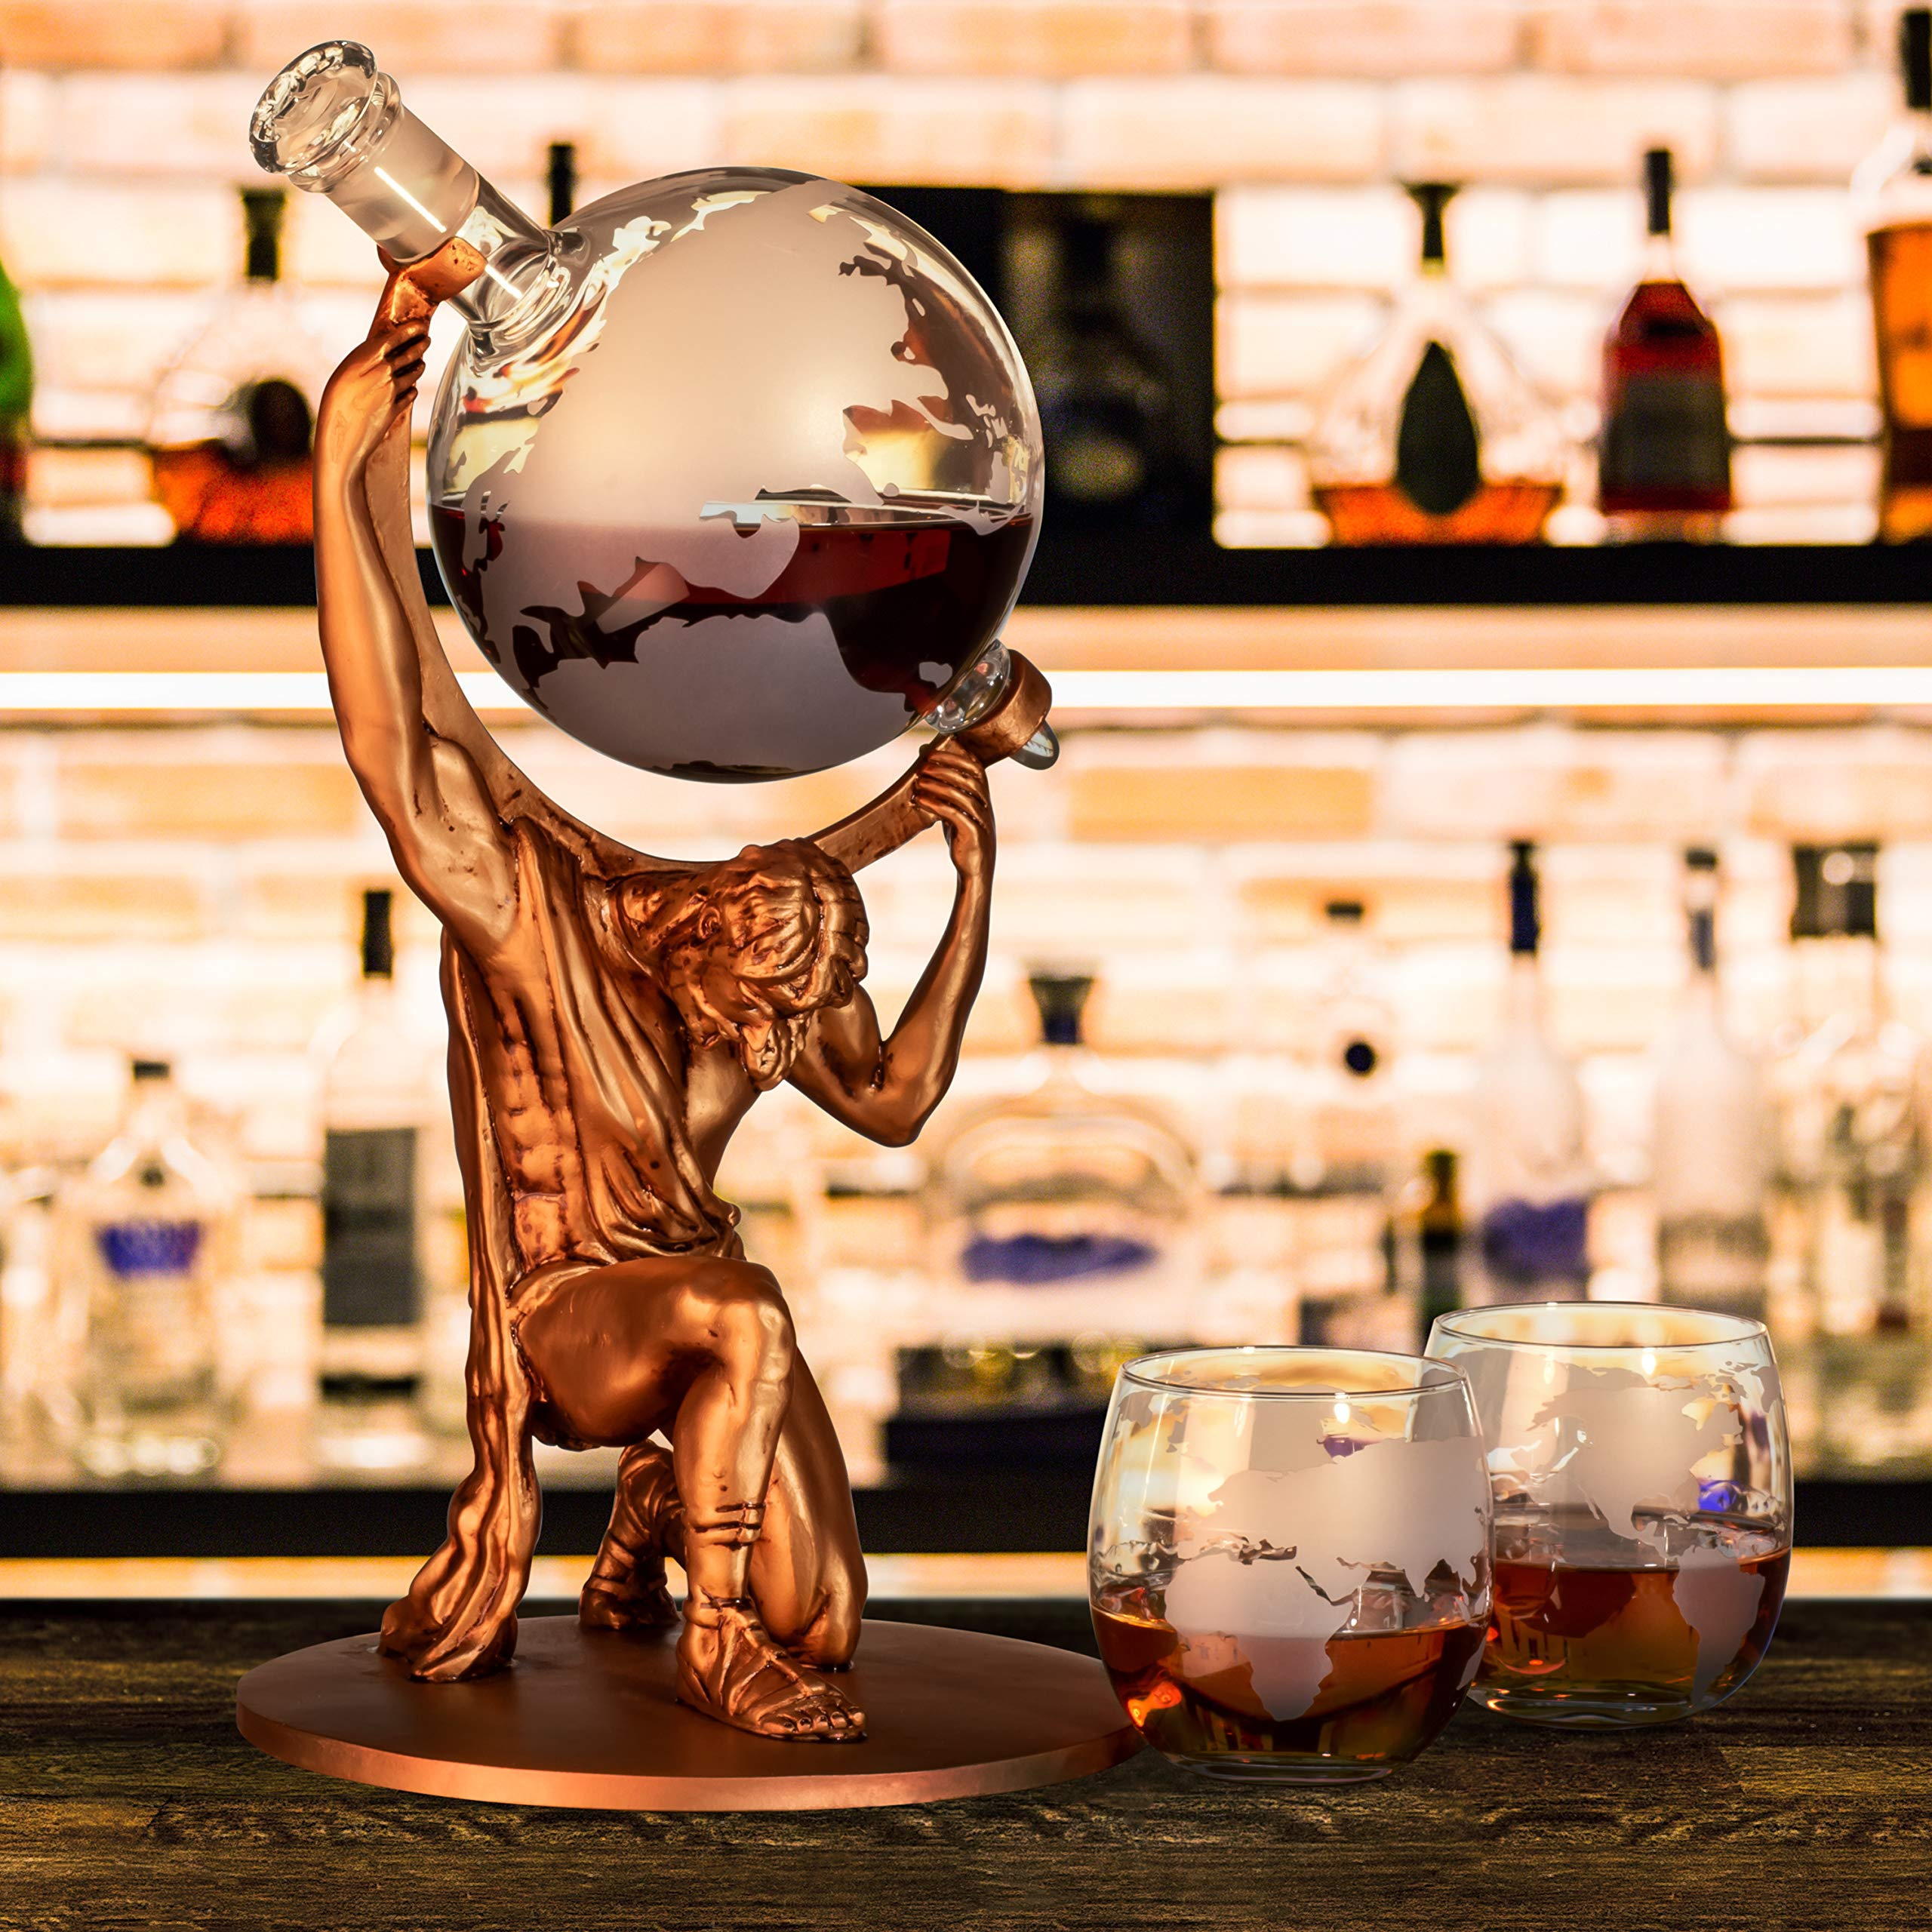 Atlas Man Whiskey Decanter Globe Set - With 2 Etched Globe Whiskey Glasses - For Whiskey, Scotch, Bourbon, Cognac and Brandy - 1000ml by NatureWorks (Image #5)